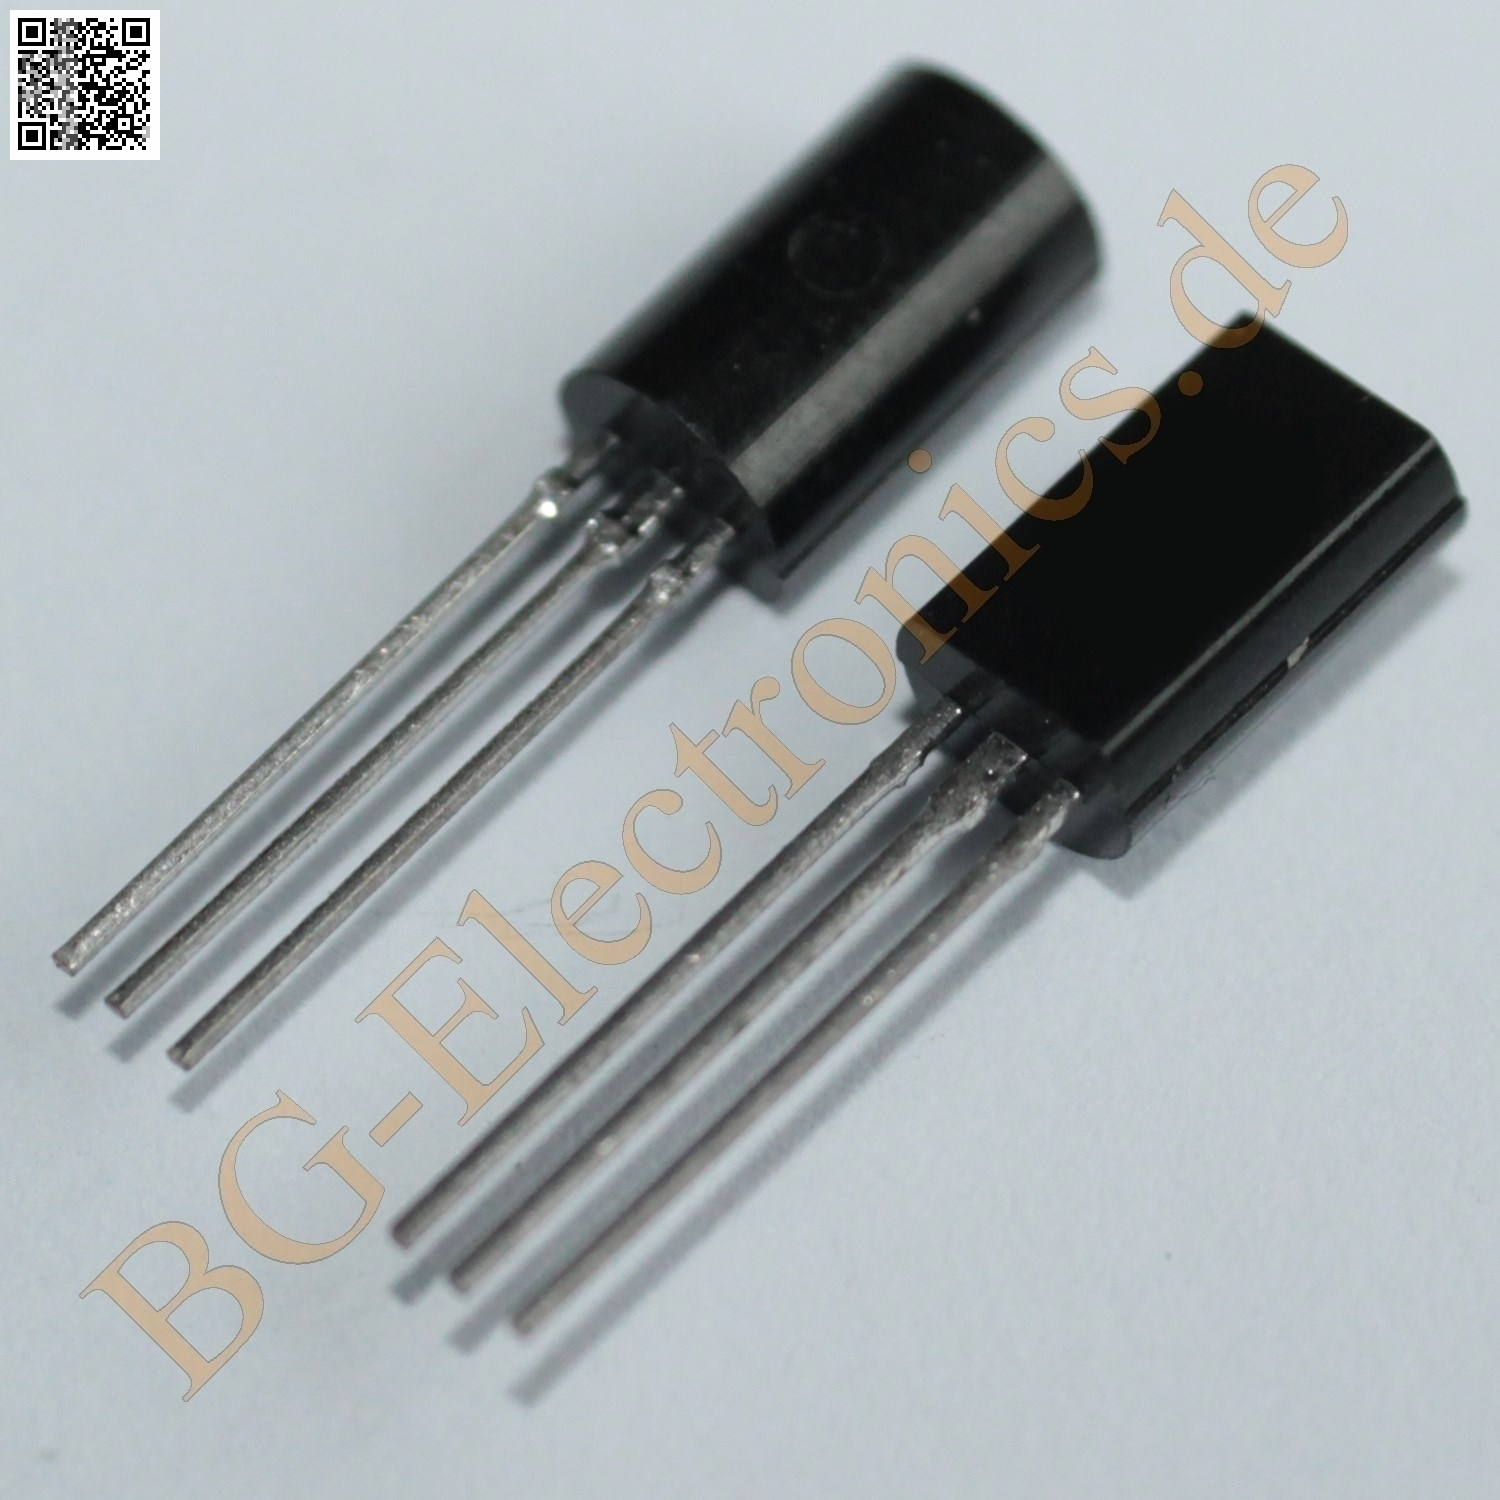 """5 x 2sa1370 PNP Epitaxial Silicon Transistor for High /""""Sanyo to-92l 5pcs"""